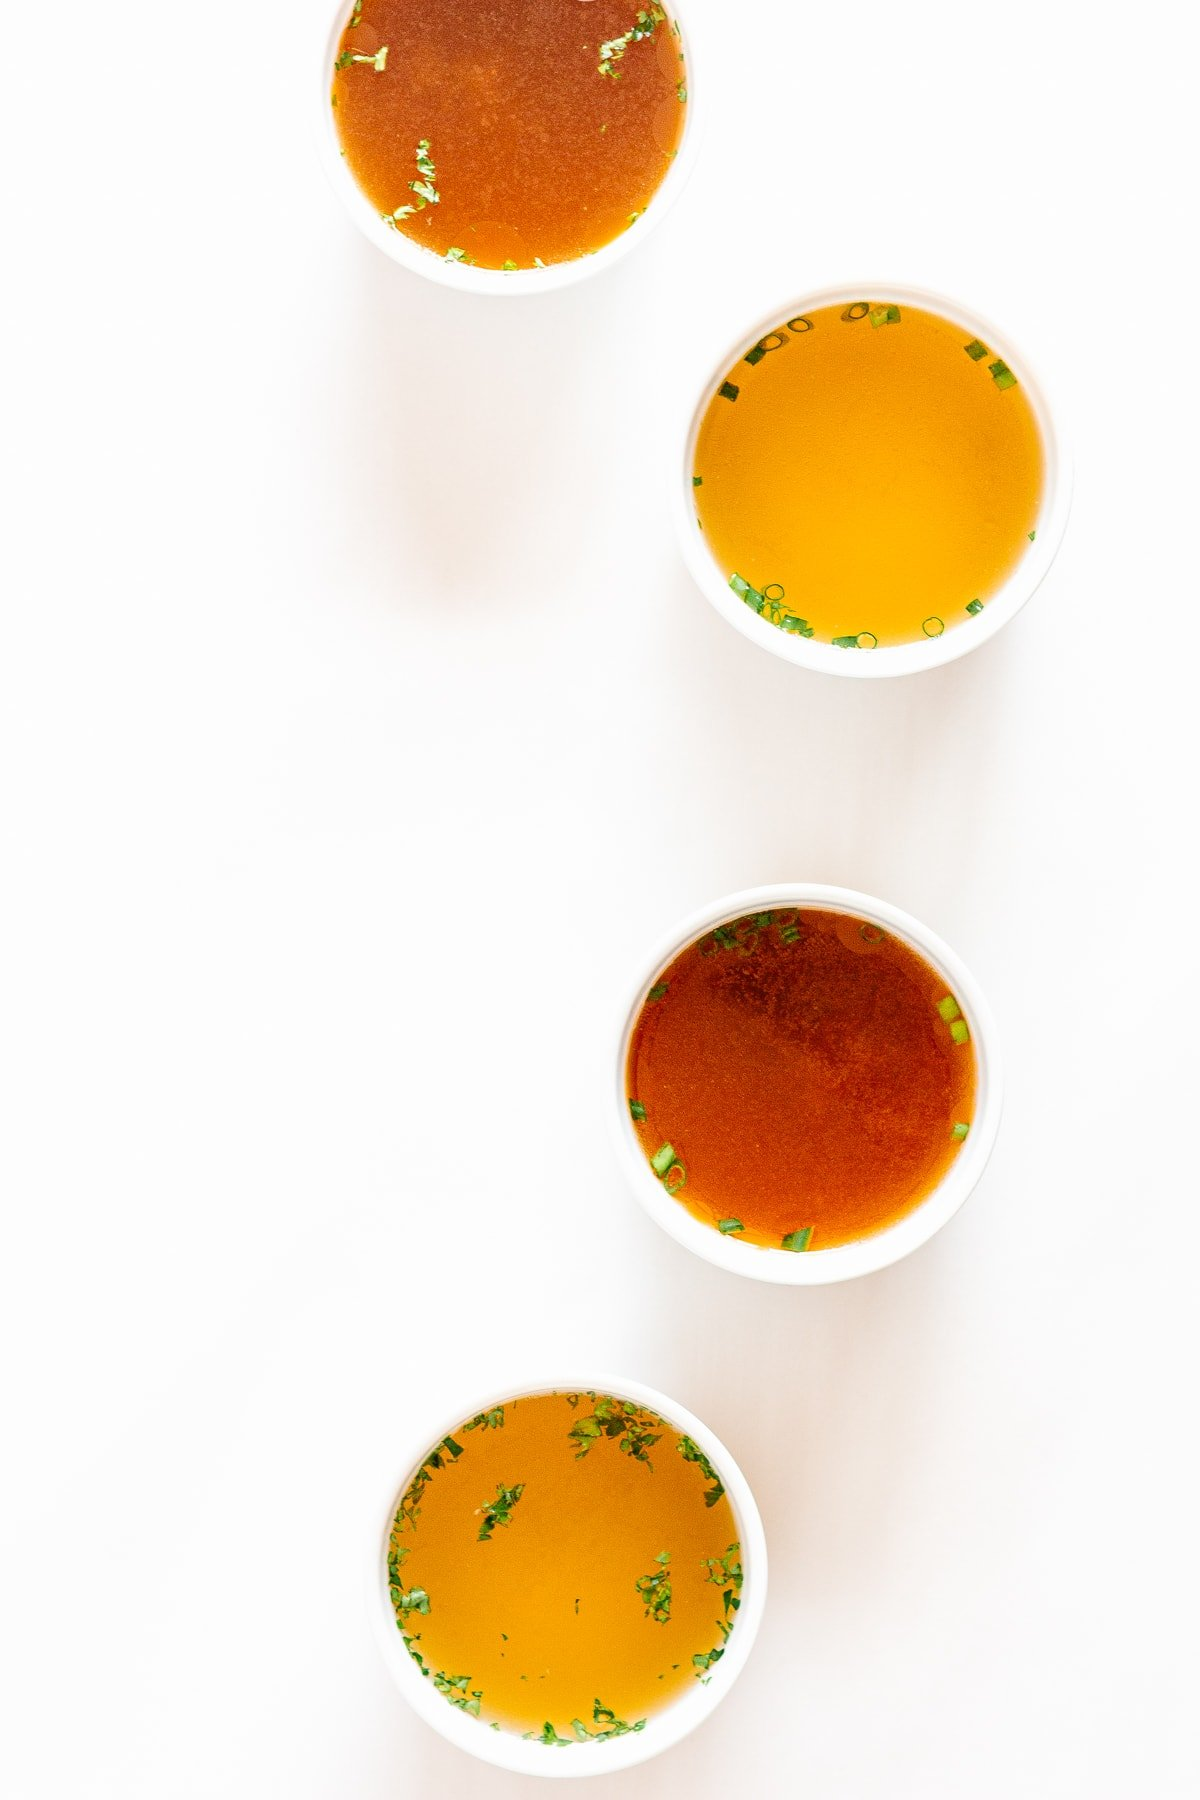 Overhead shot of four small white bowls of broth arranged in a curved shape on a white background.